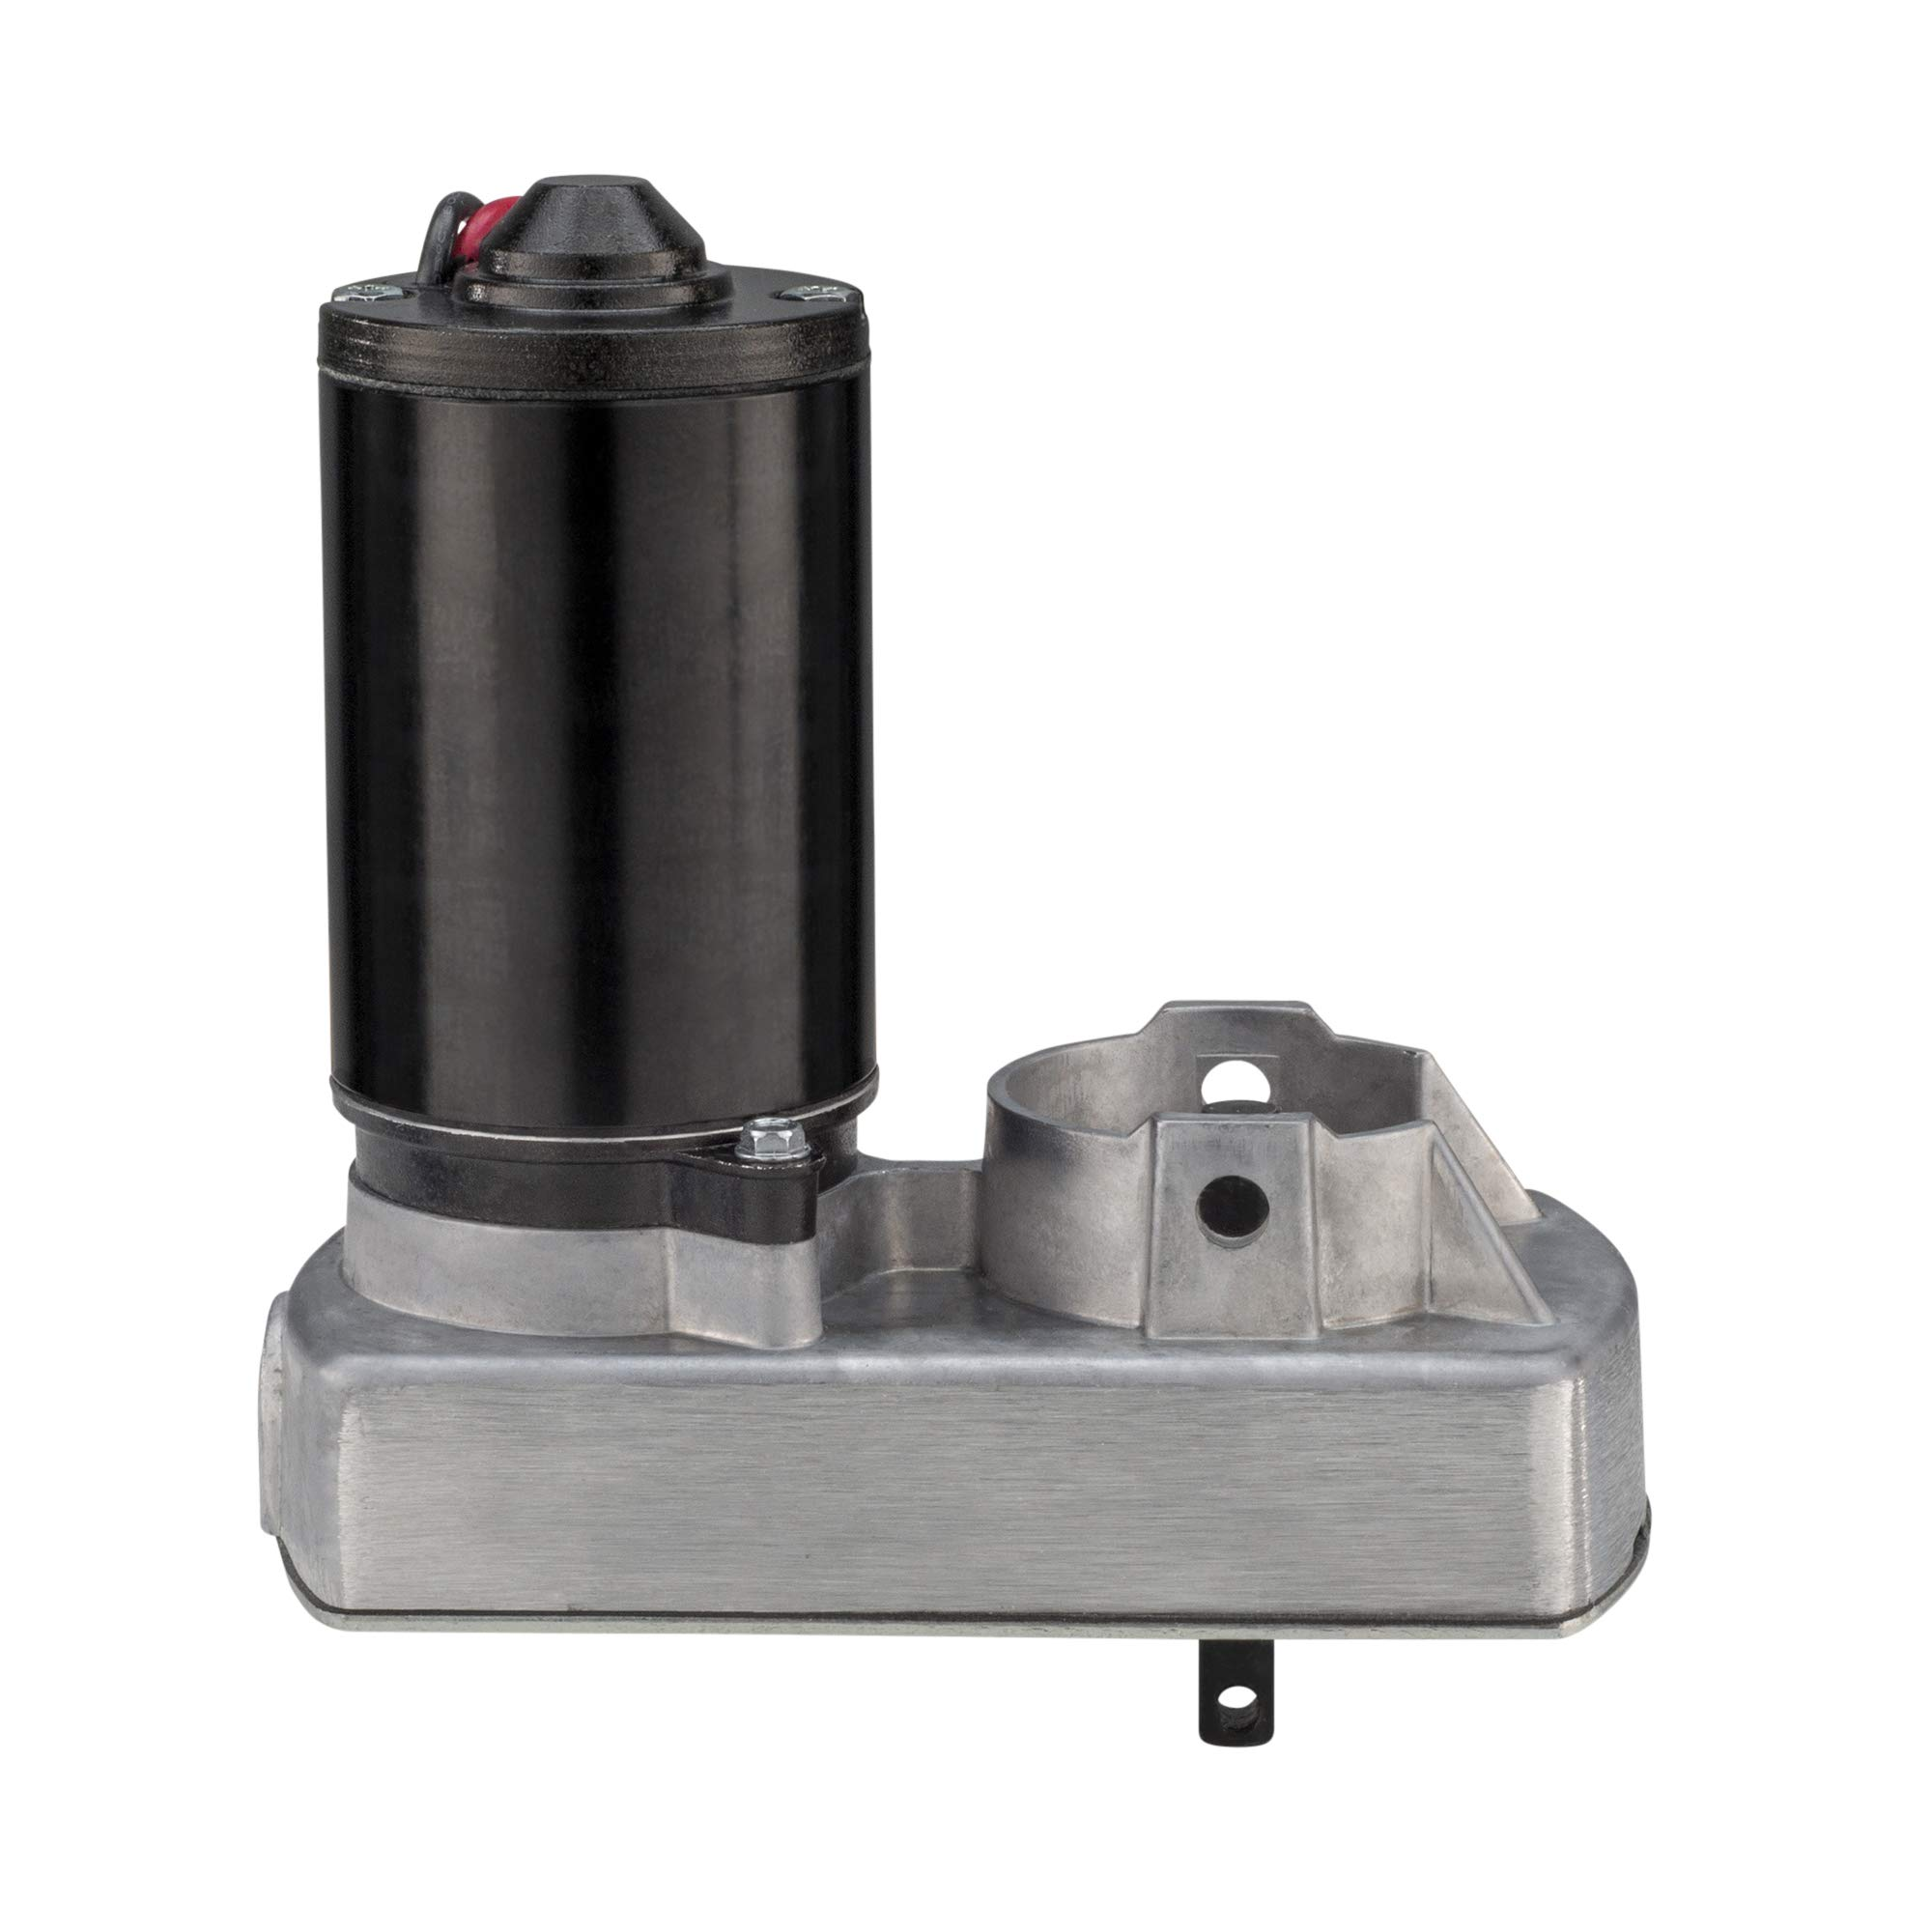 RV Slide Out Motor 18:1 Ratio Replacement Motor M-8910 (1 Motor)